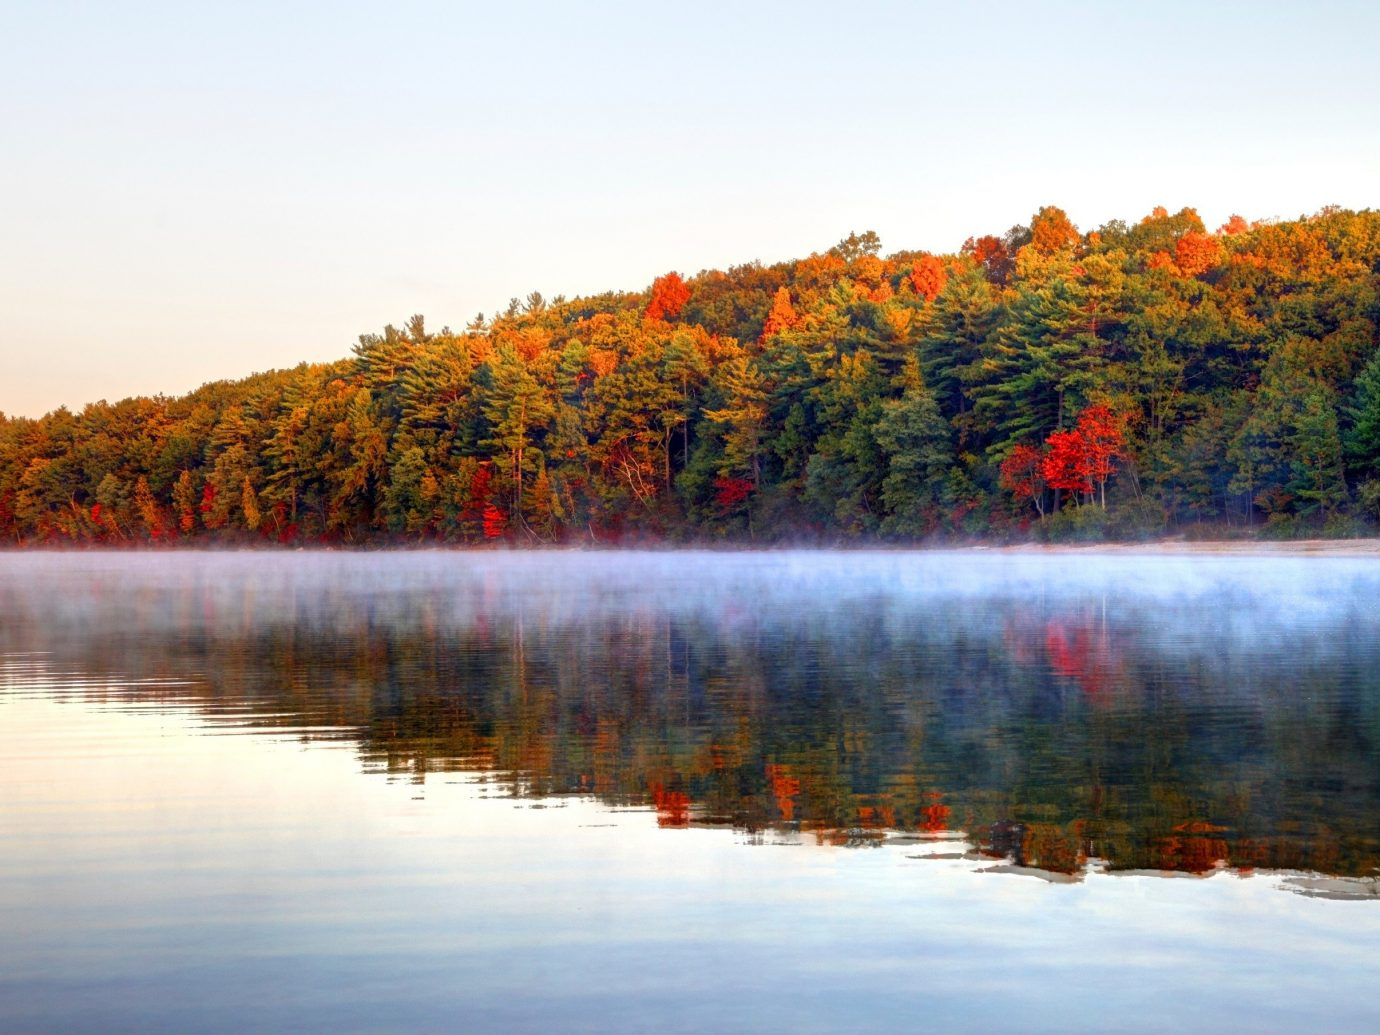 Budget outdoor water sky Nature pond tree reflection River Lake atmospheric phenomenon wilderness season autumn morning leaf landscape evening dawn loch sunrise Forest surrounded distance